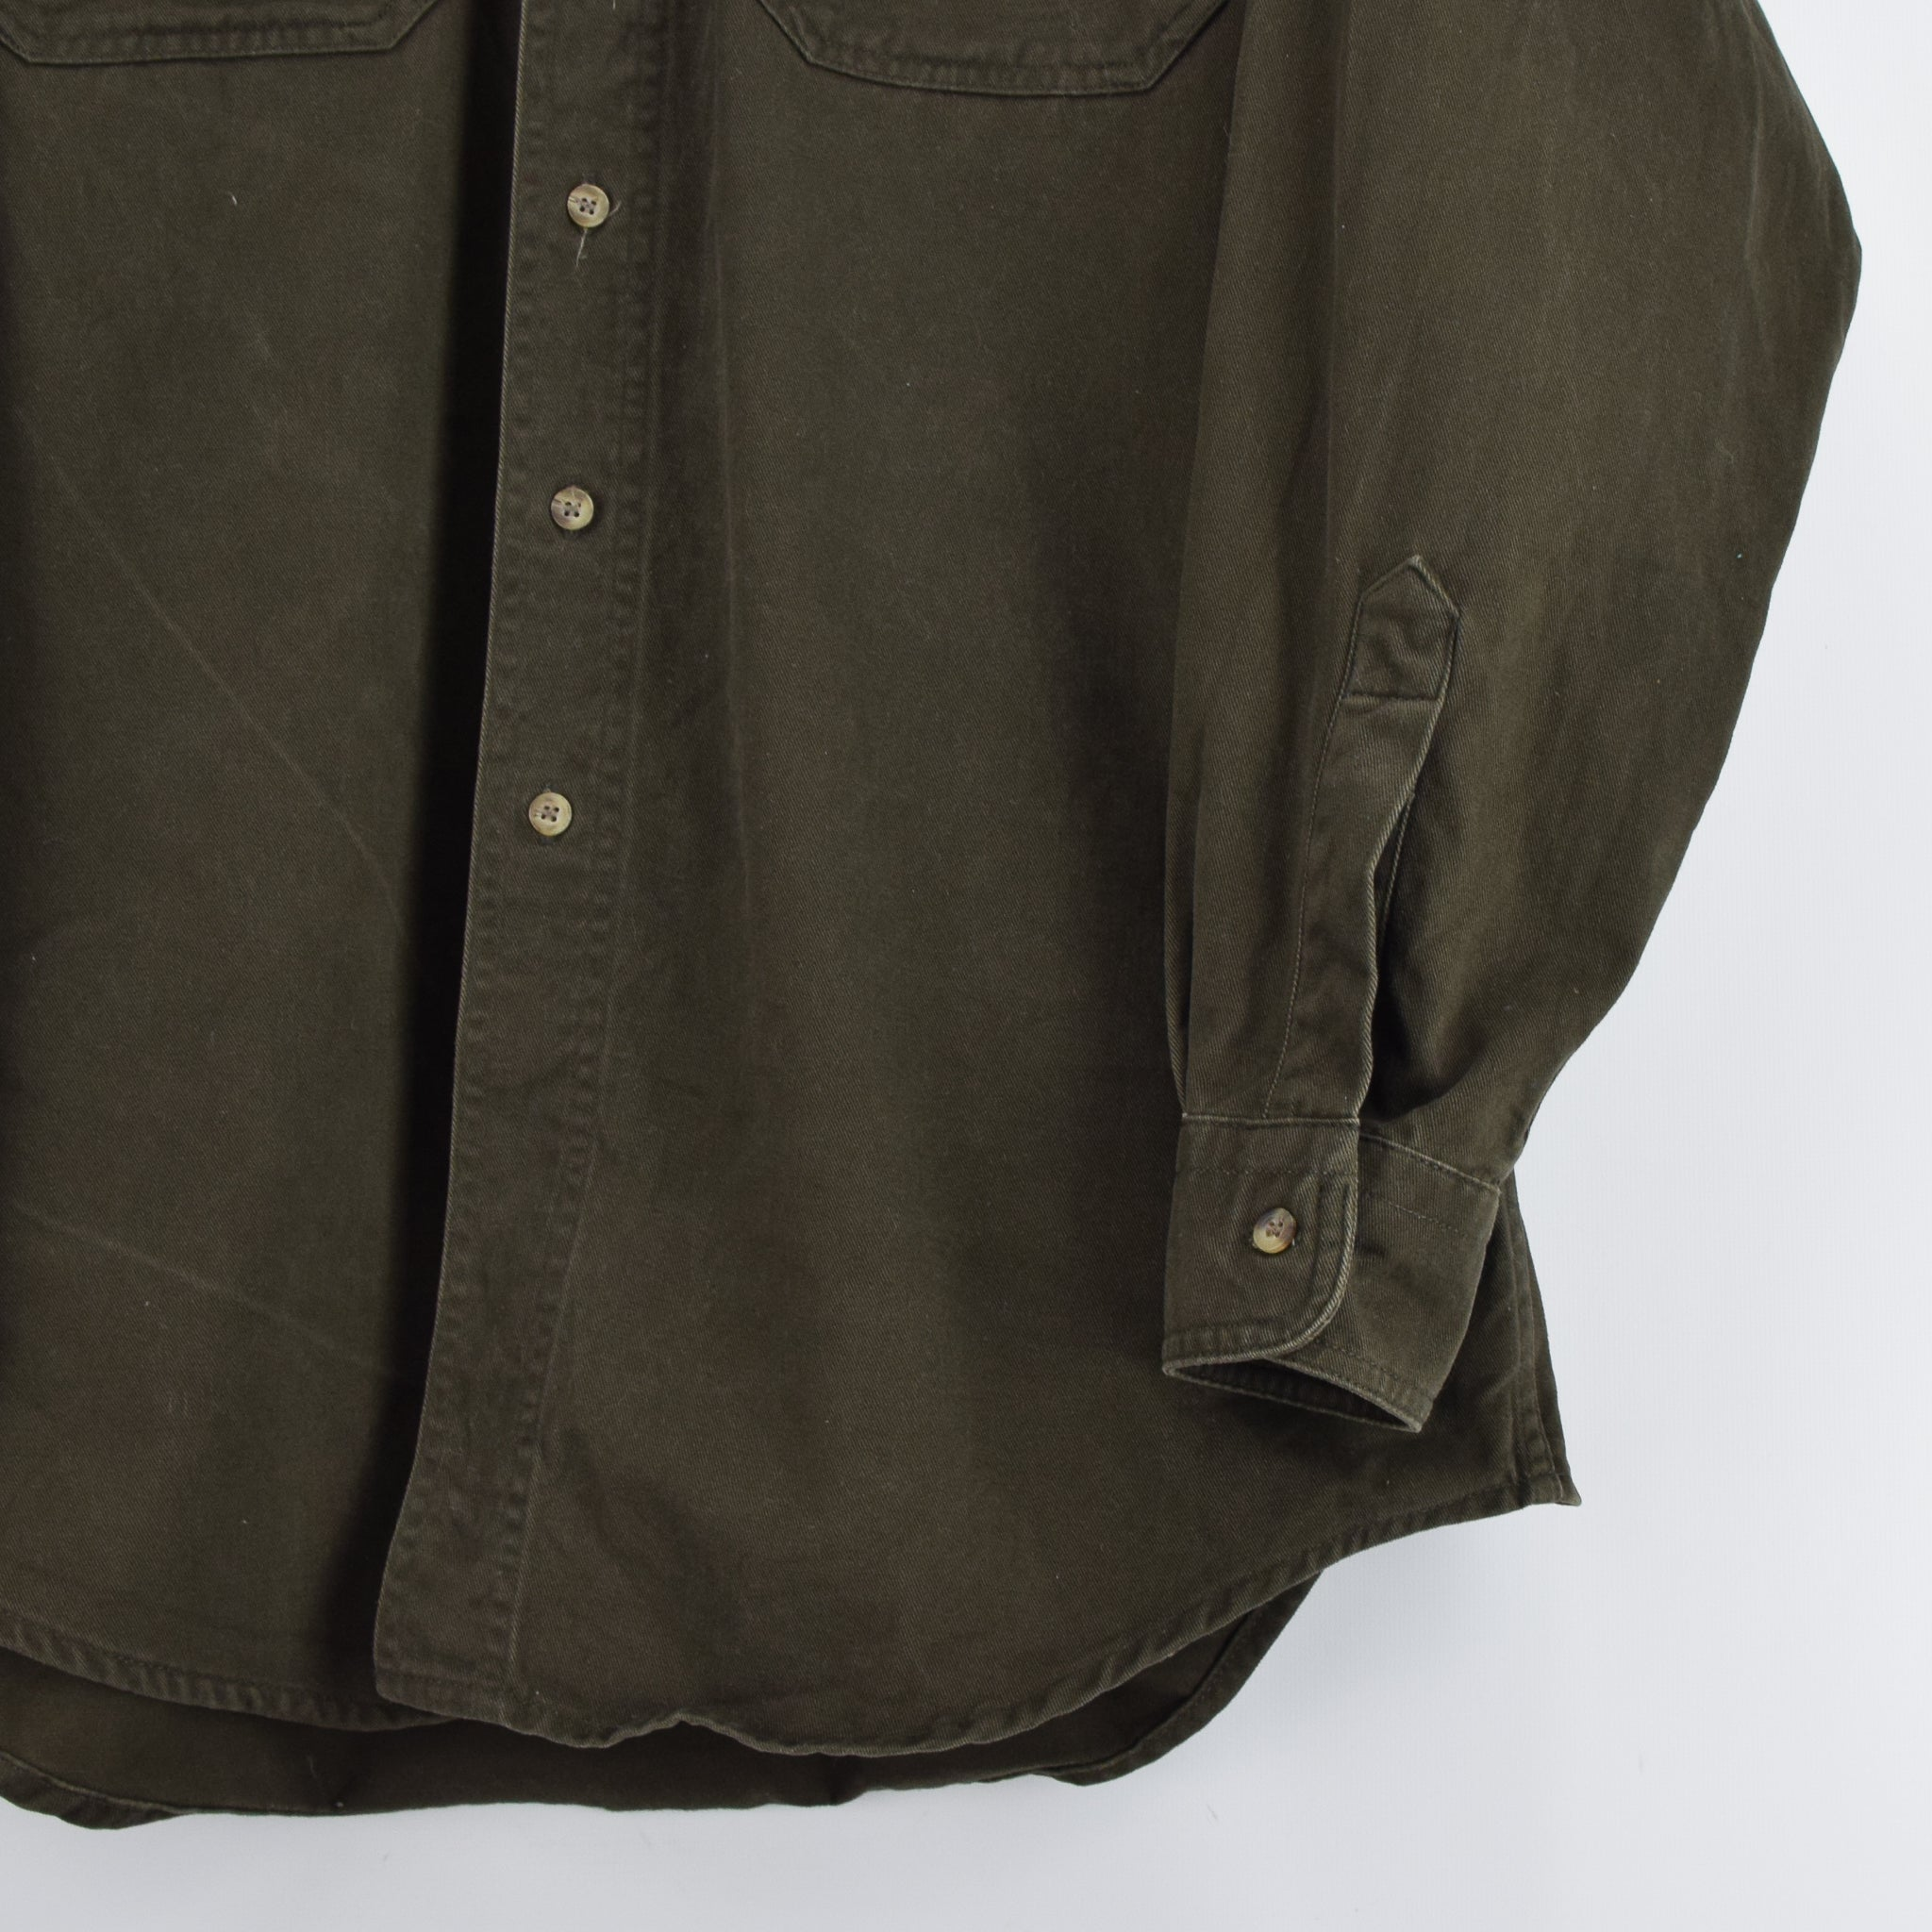 Vintage Woolrich Dark Green CPO Style Cotton Field Shirt L front hem